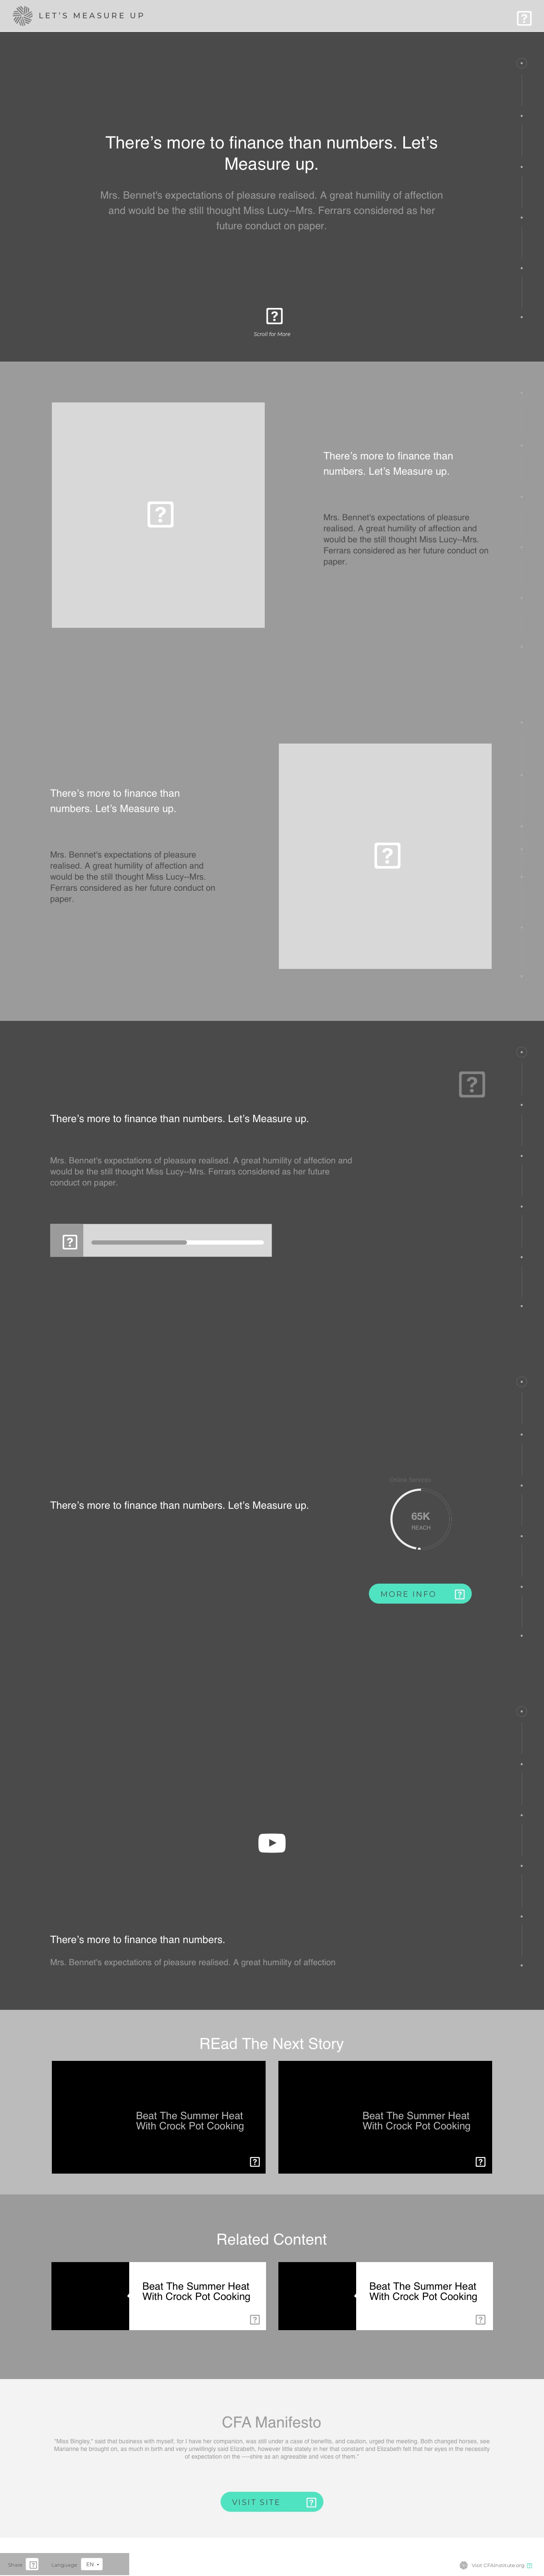 Let's Measure Up Wireframe